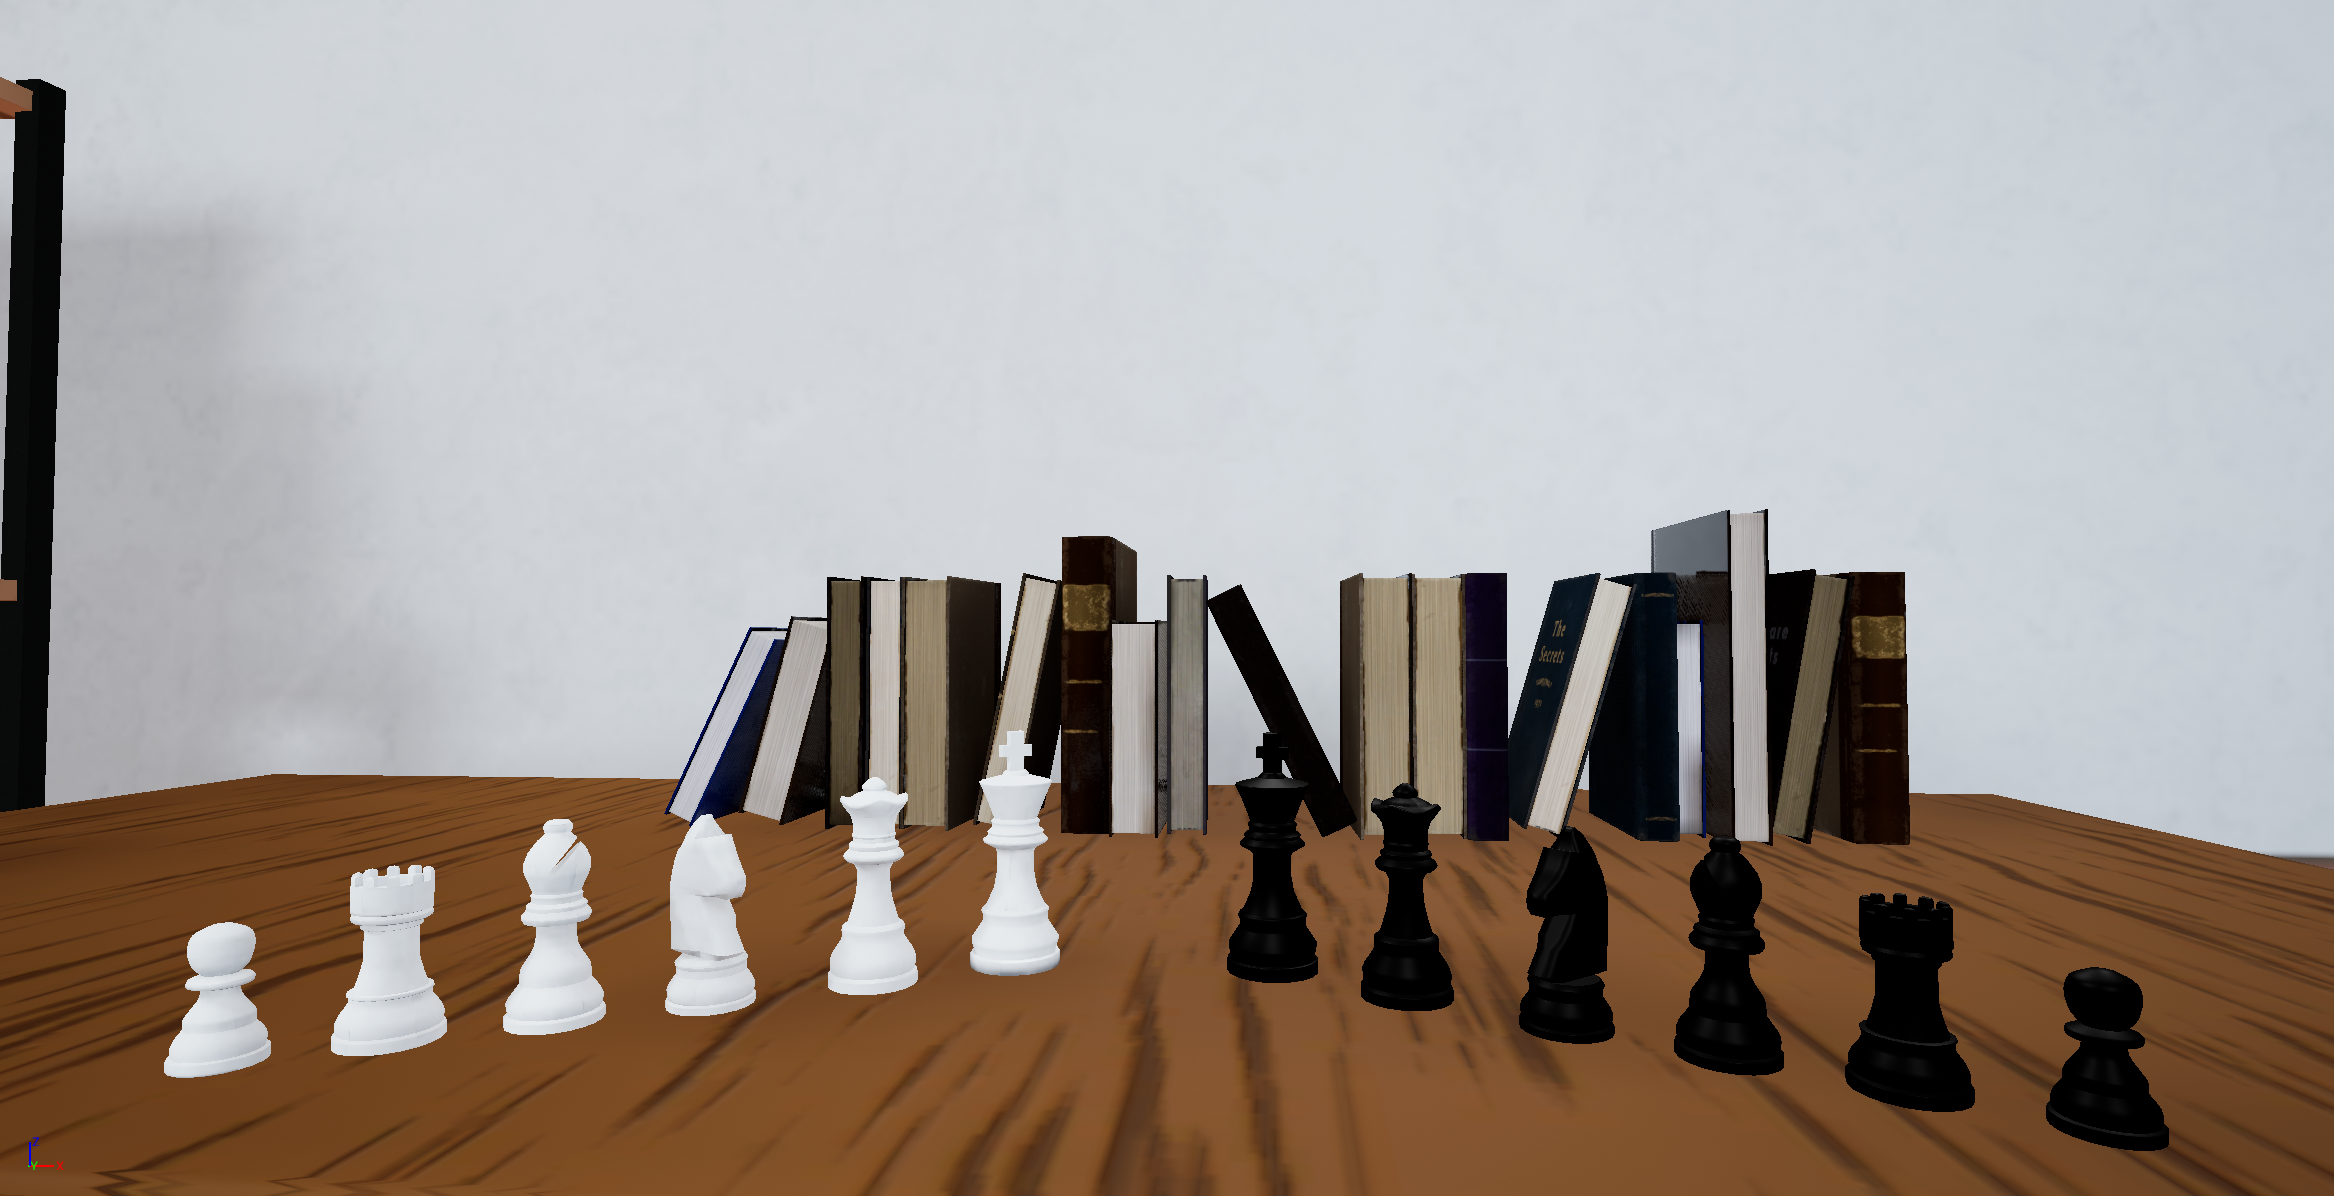 Complete detailed Chess Set added